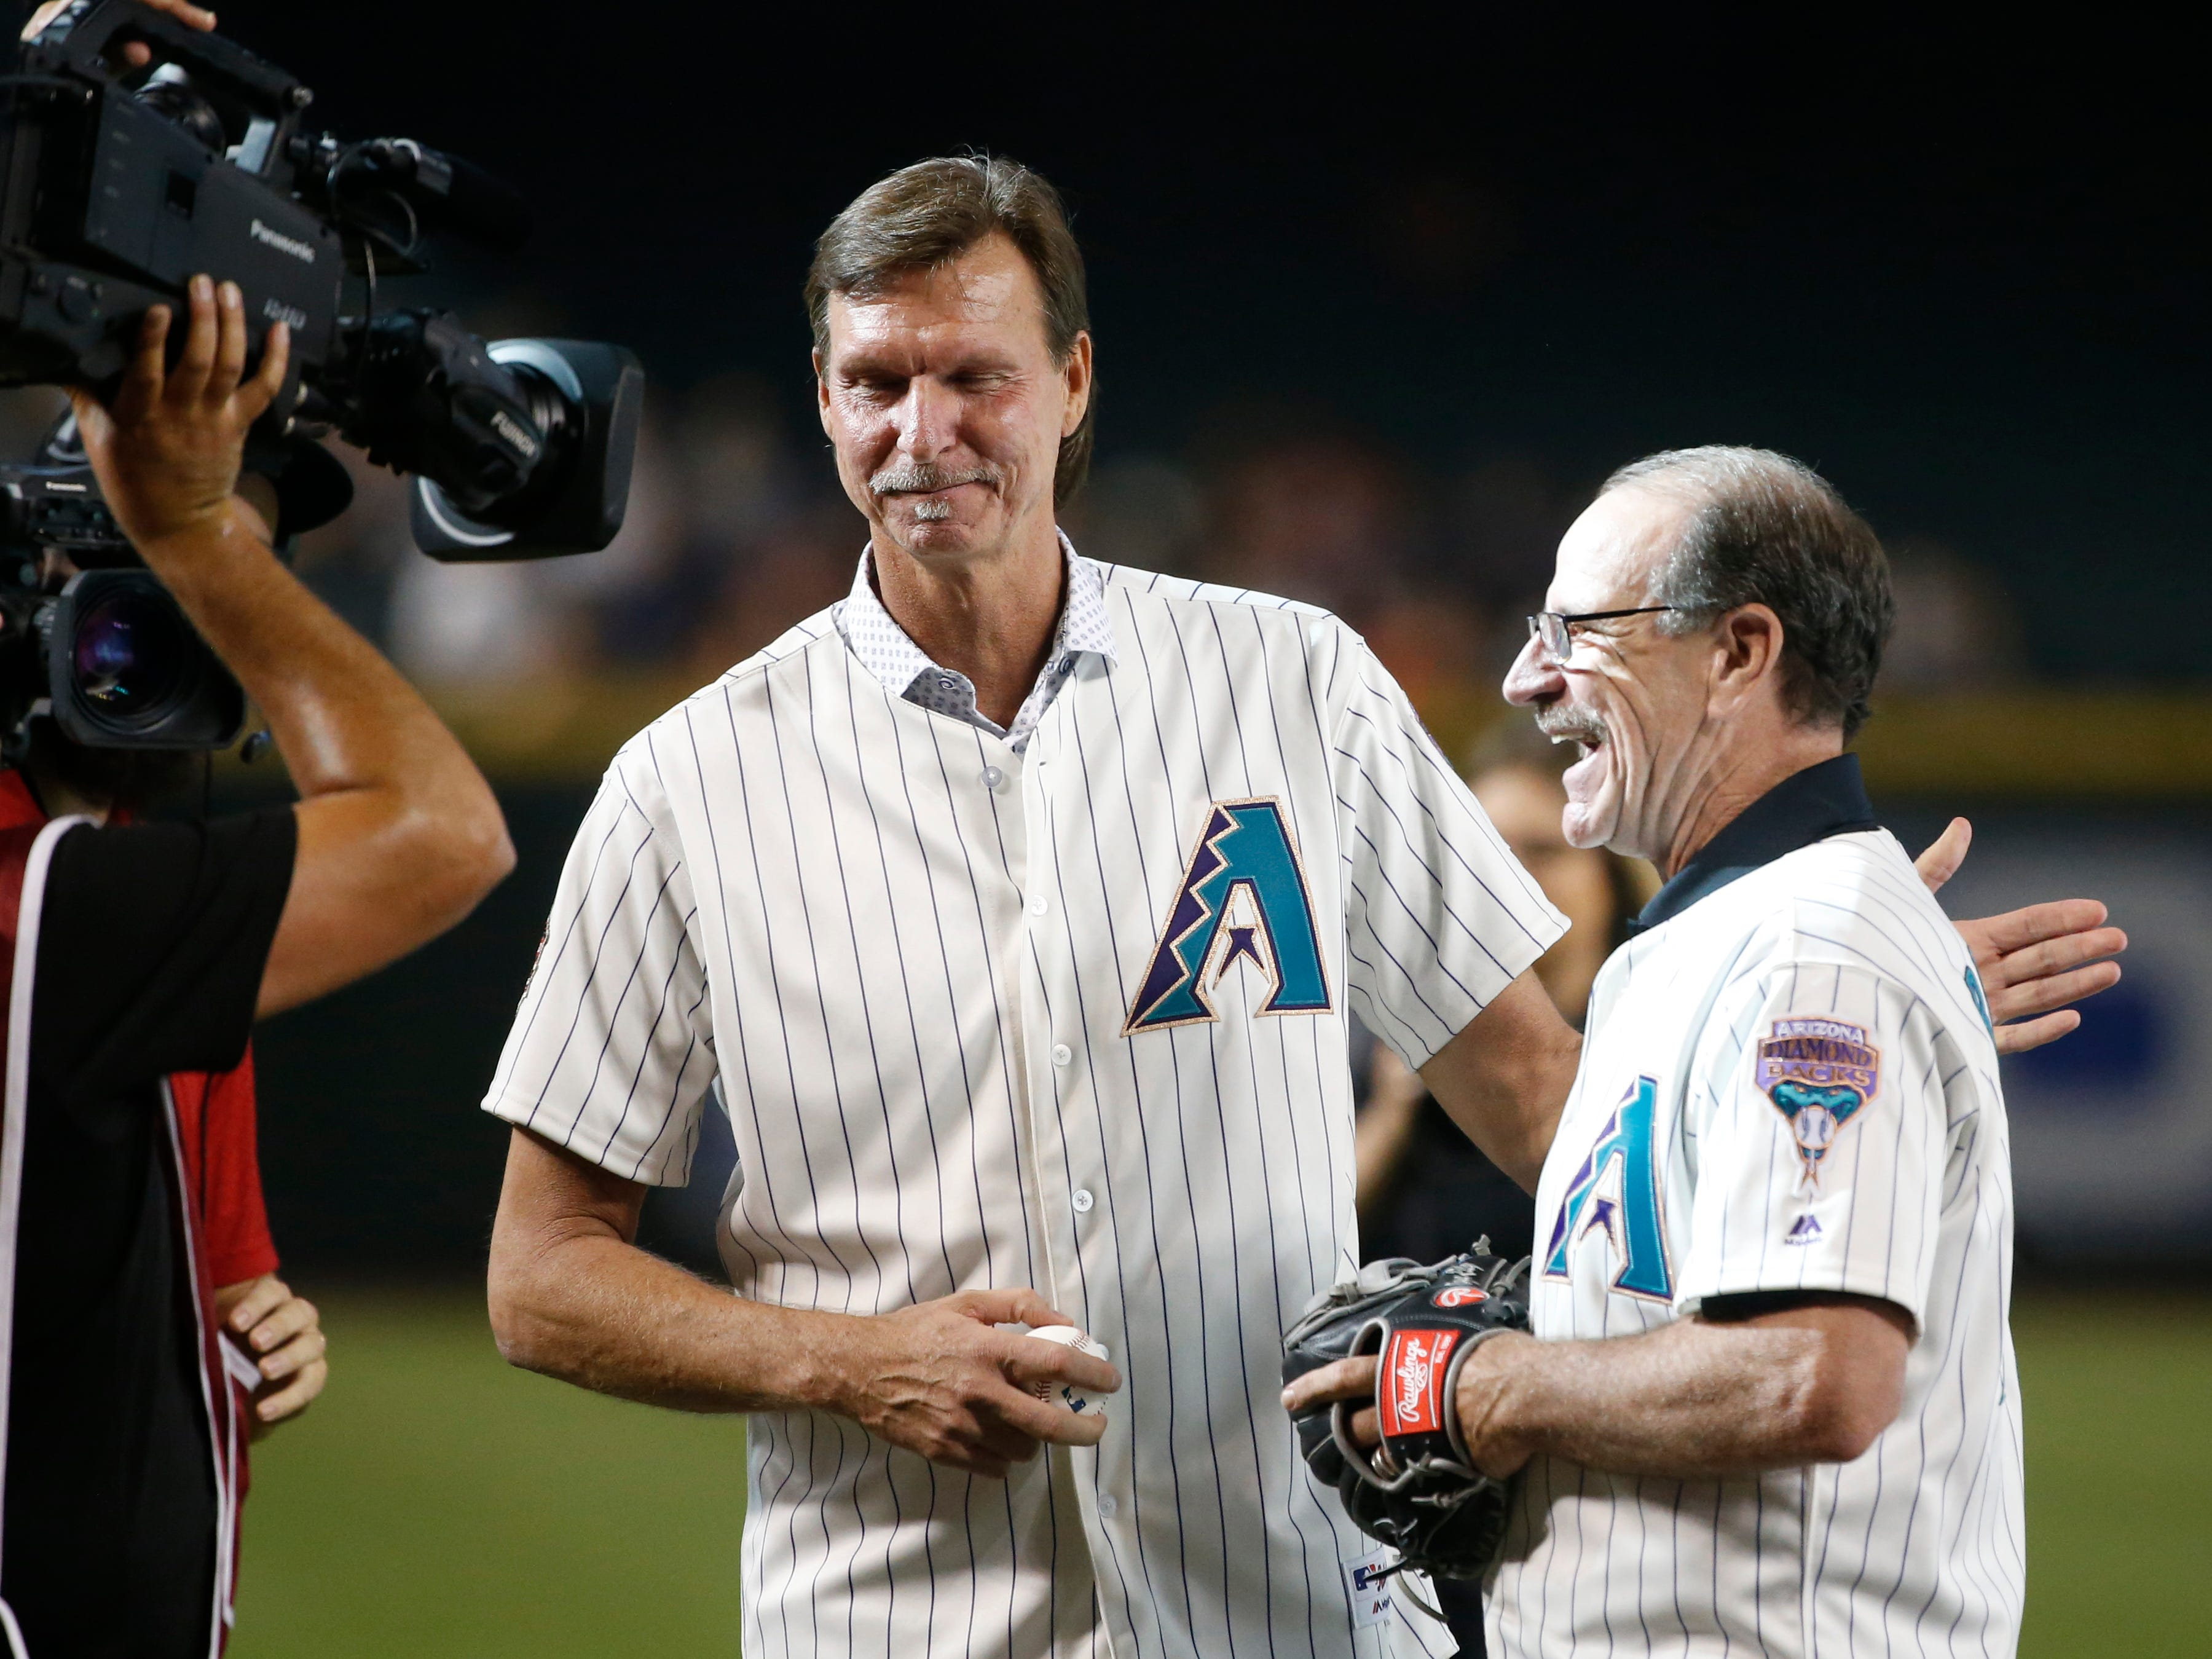 Diamondbacks Randy Johnson (L) and manager Bob Brenly greet each other after the 20th Anniversary team ceremony before a Diamondbacks game at Chase Field in Phoenix, Ariz. on Aug. 4, 2018.